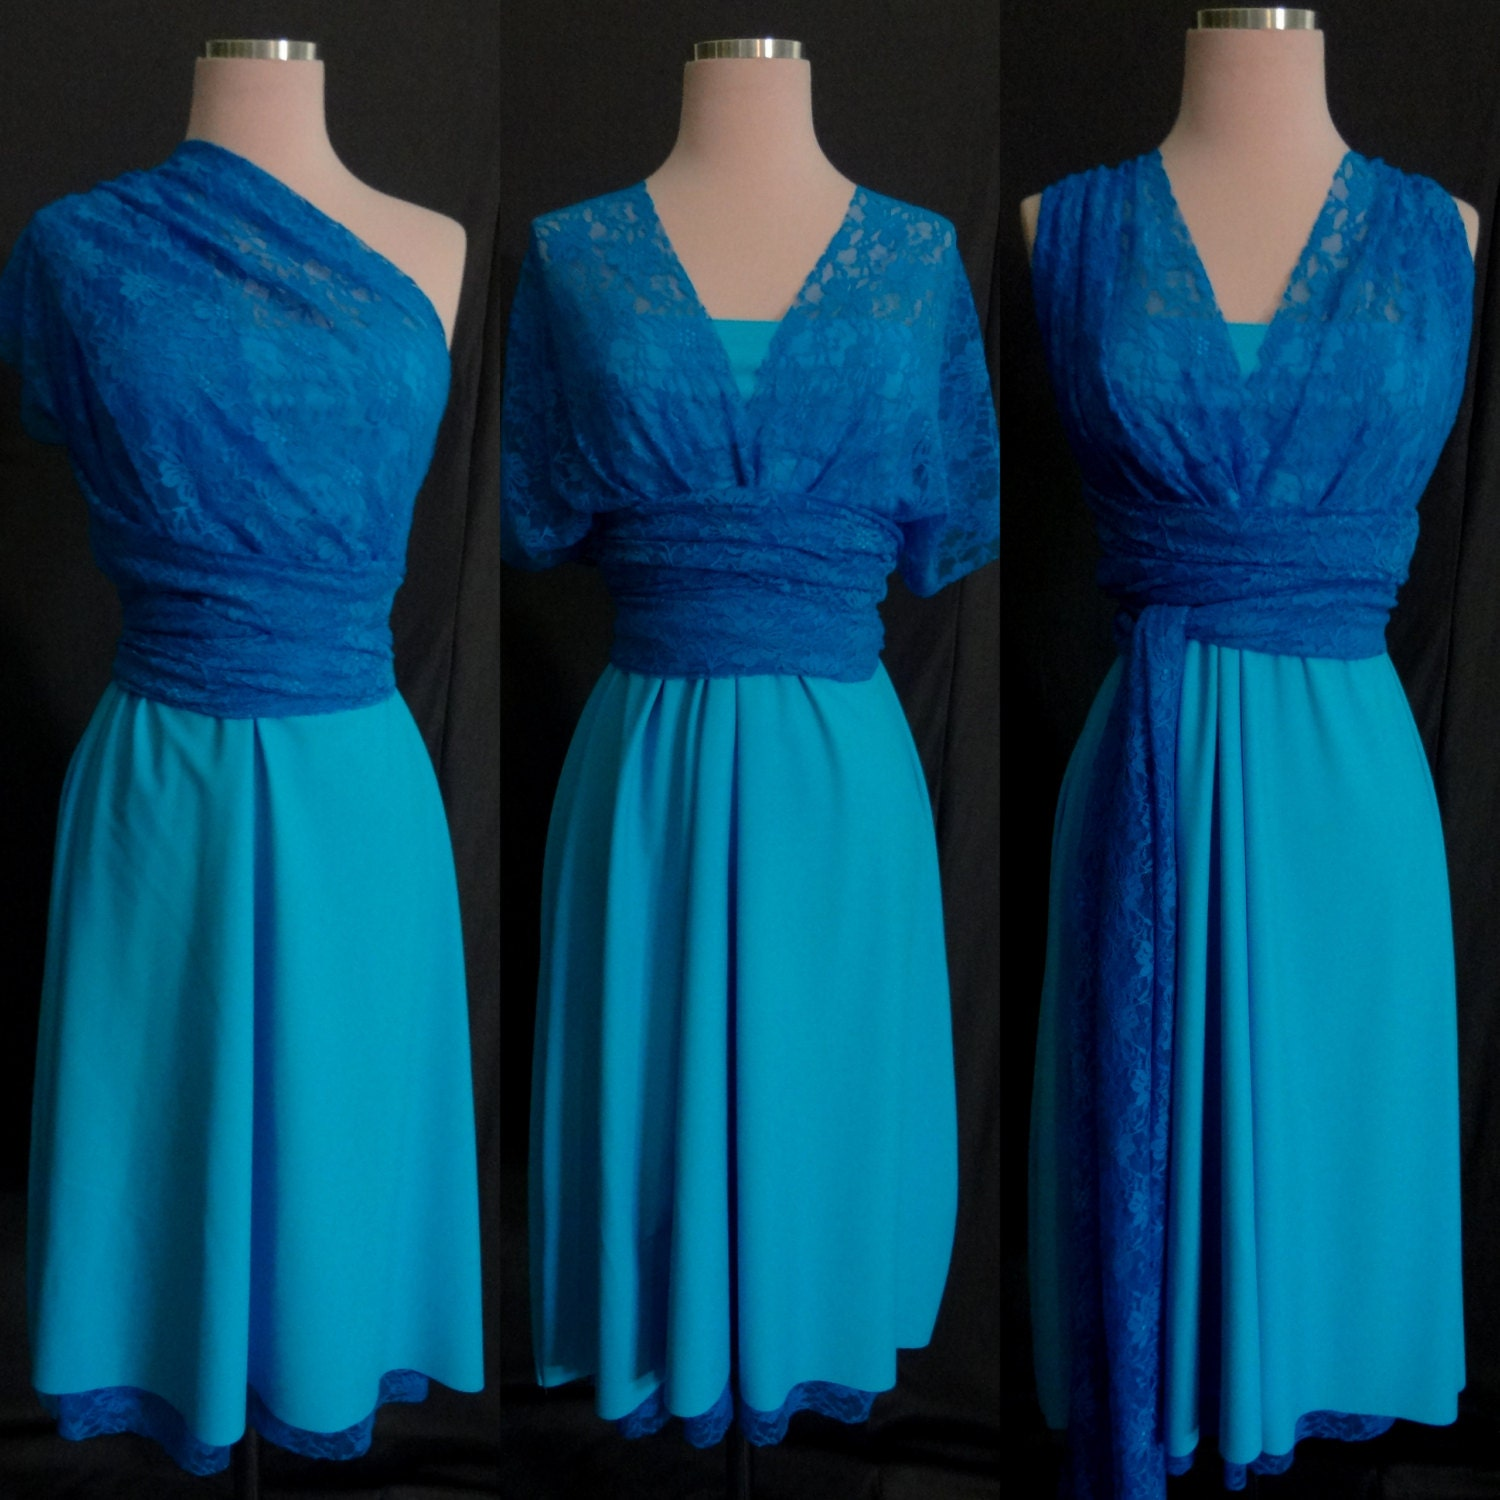 Turquoise Blue Lace Bridesmaids Infinity Dress 67 Colors